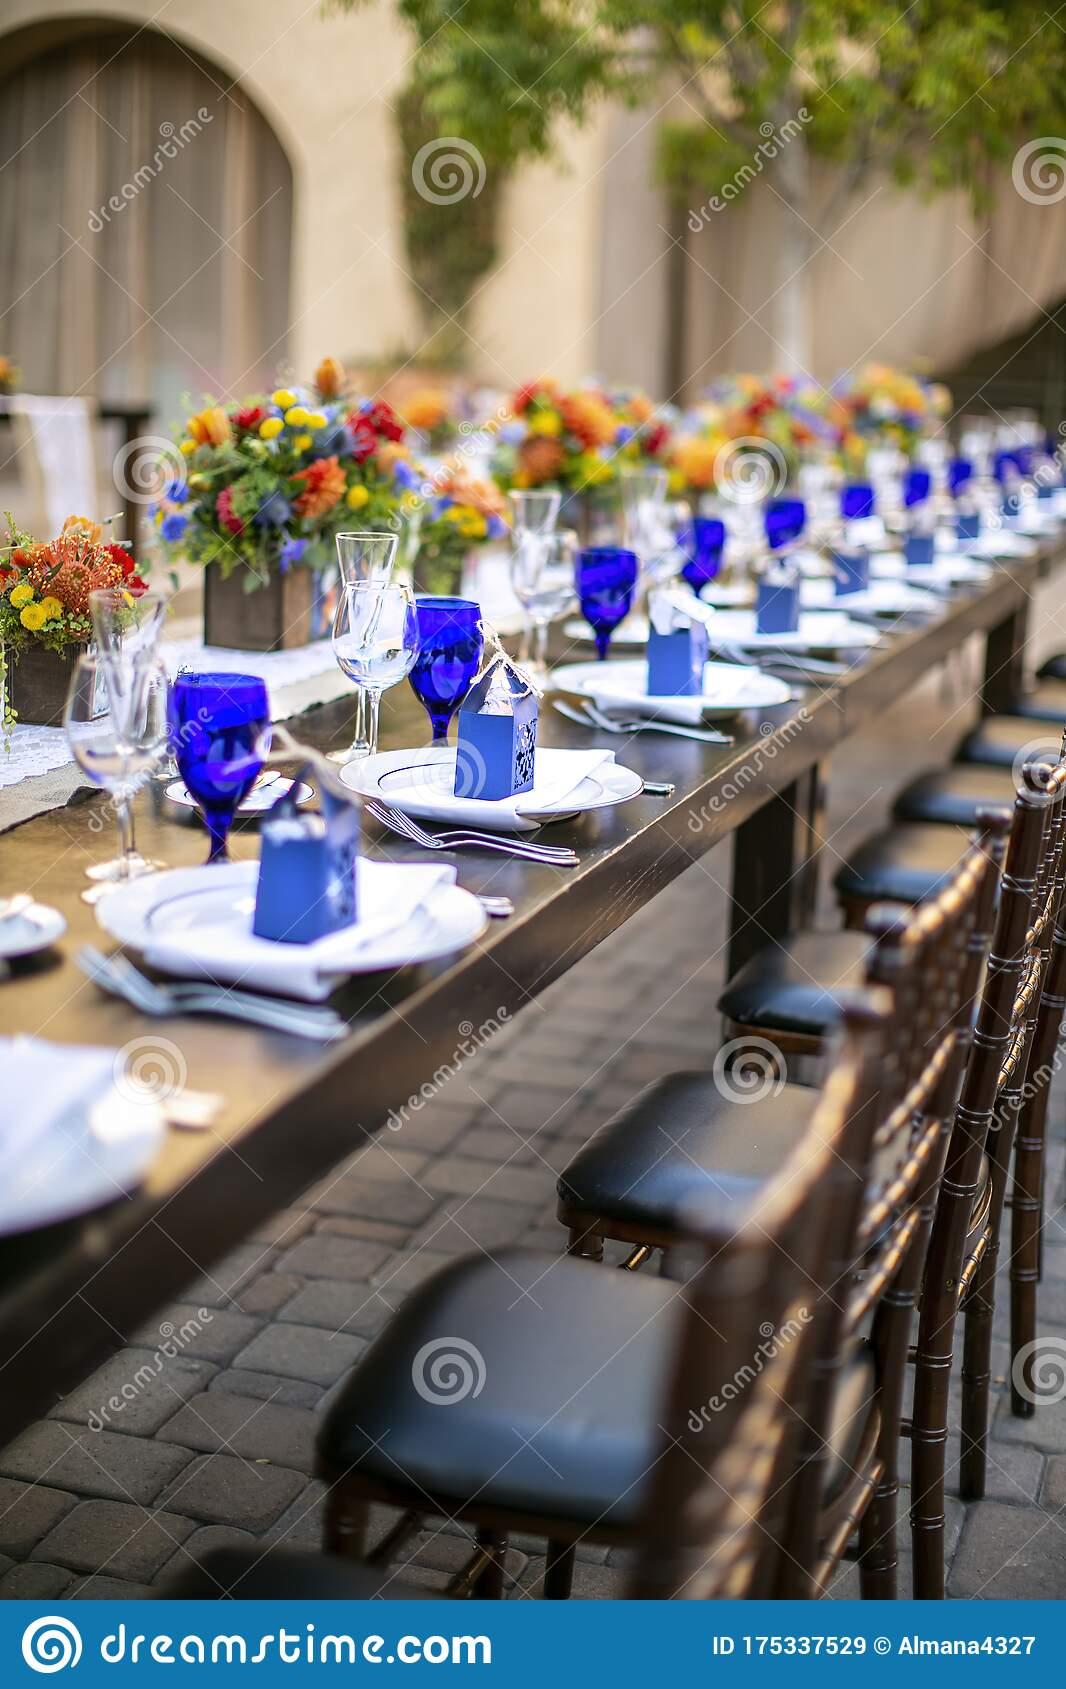 Table Setting For A Wedding Celebration In An Outdoor Mission Style Patio With Blue And Orange Theme And Flower Decorations Stock Image Image Of Dinner Mission 175337529